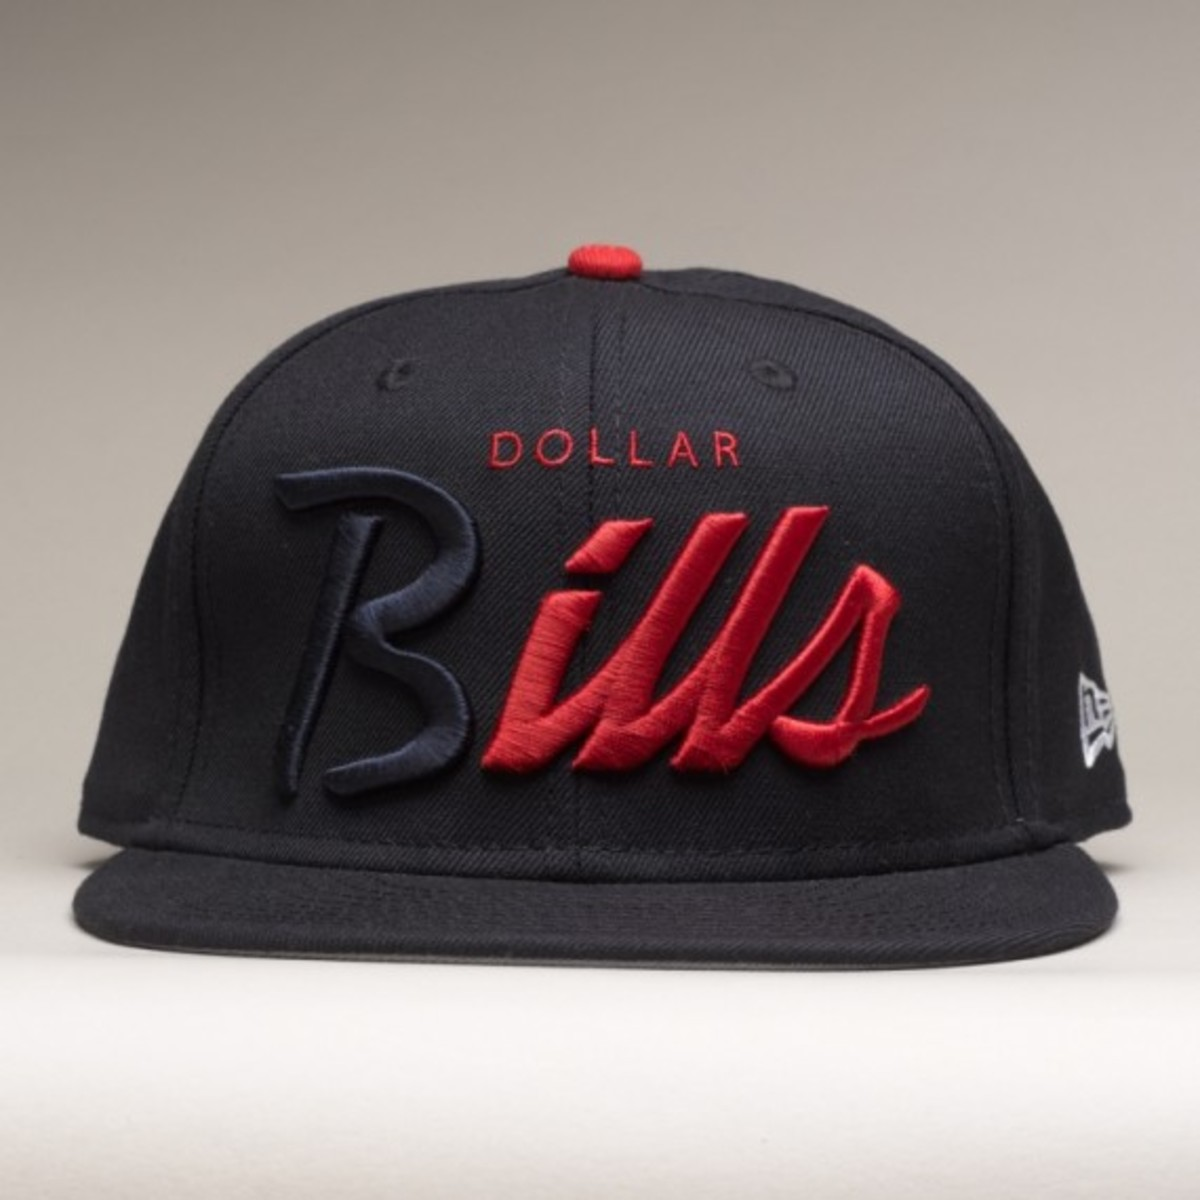 dollar-ills-black-red